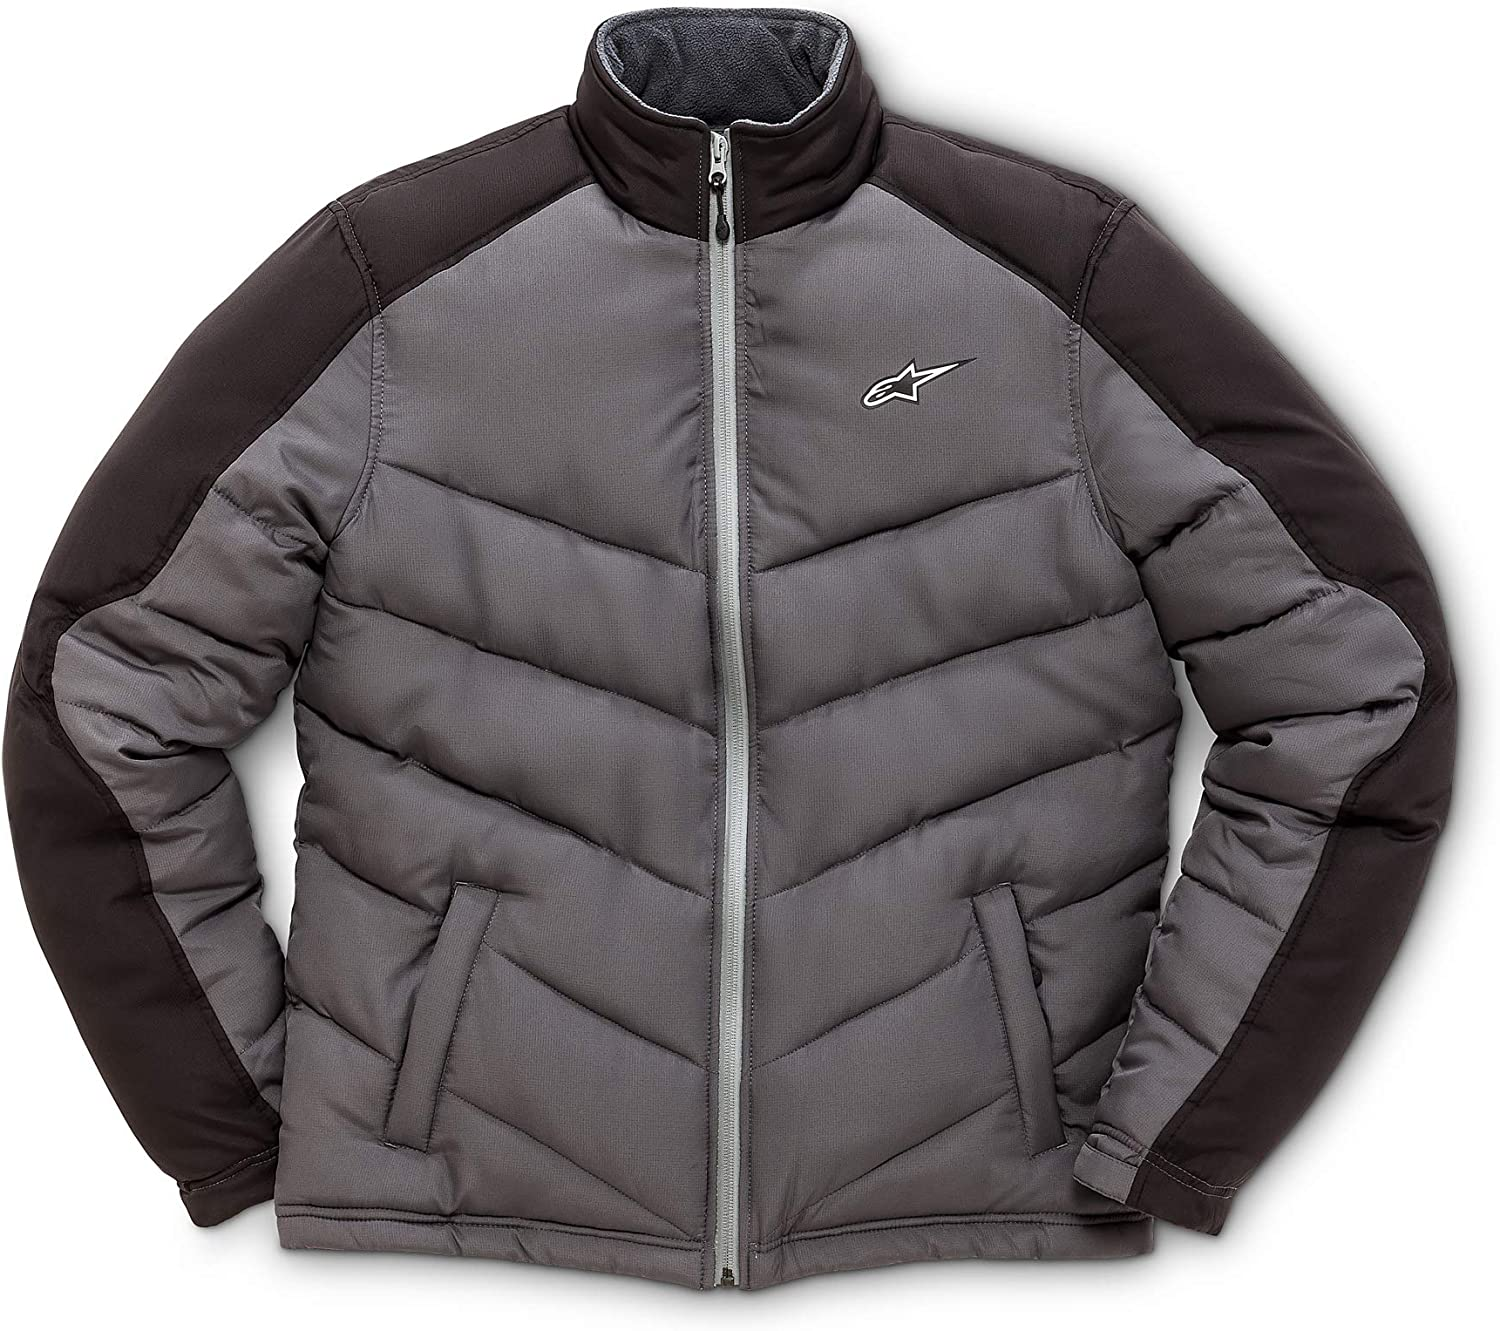 Alpinestars Men's Polyfilled Warm Jacket, RipStop Coated Fabric